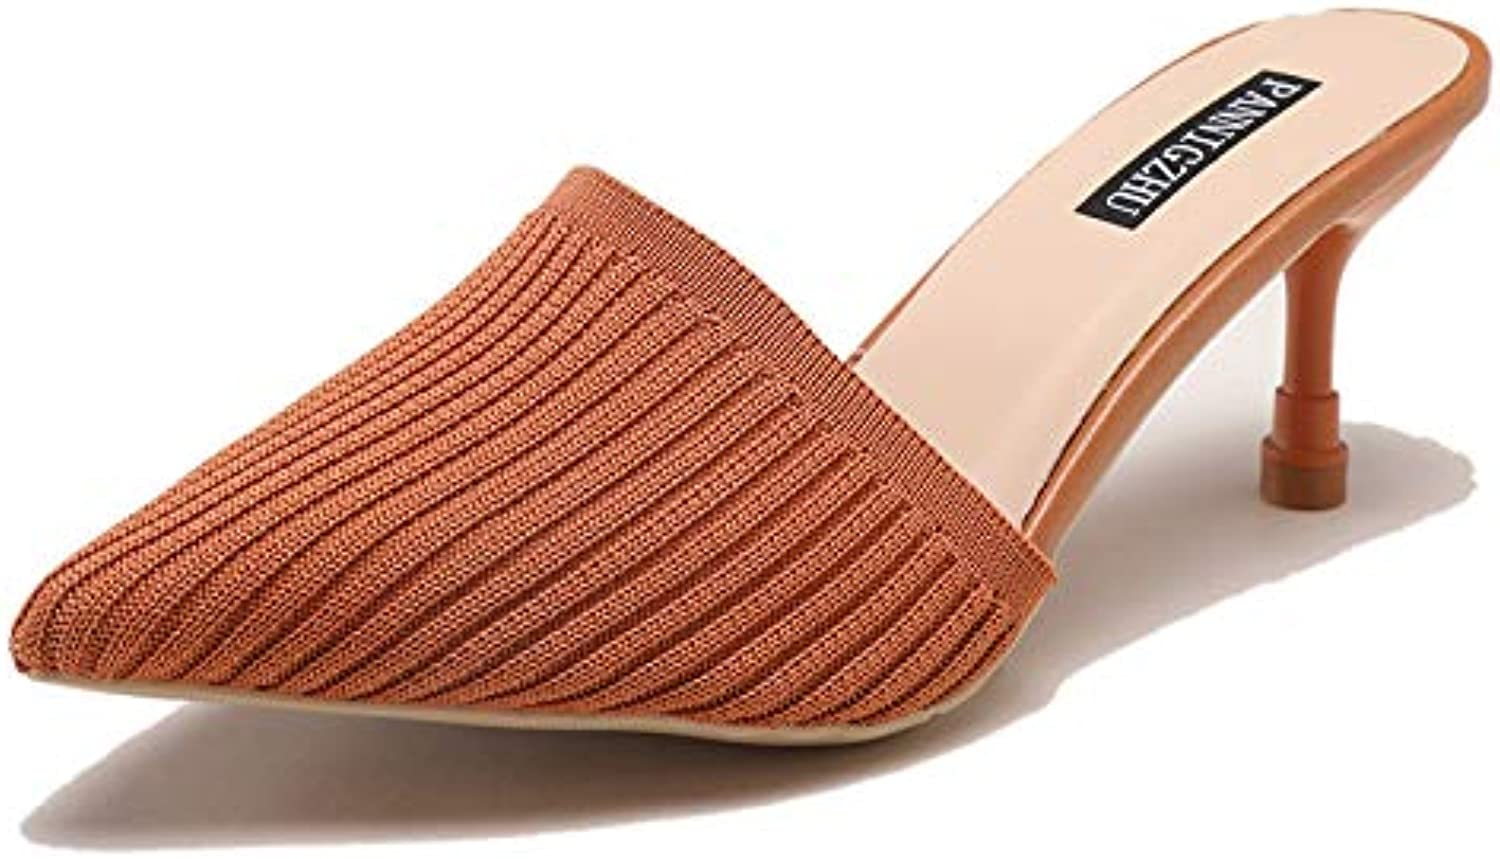 SUNNY Store Women Sandals Med Heel Open Toe Beach Ladies Height Increasing shoes Mule